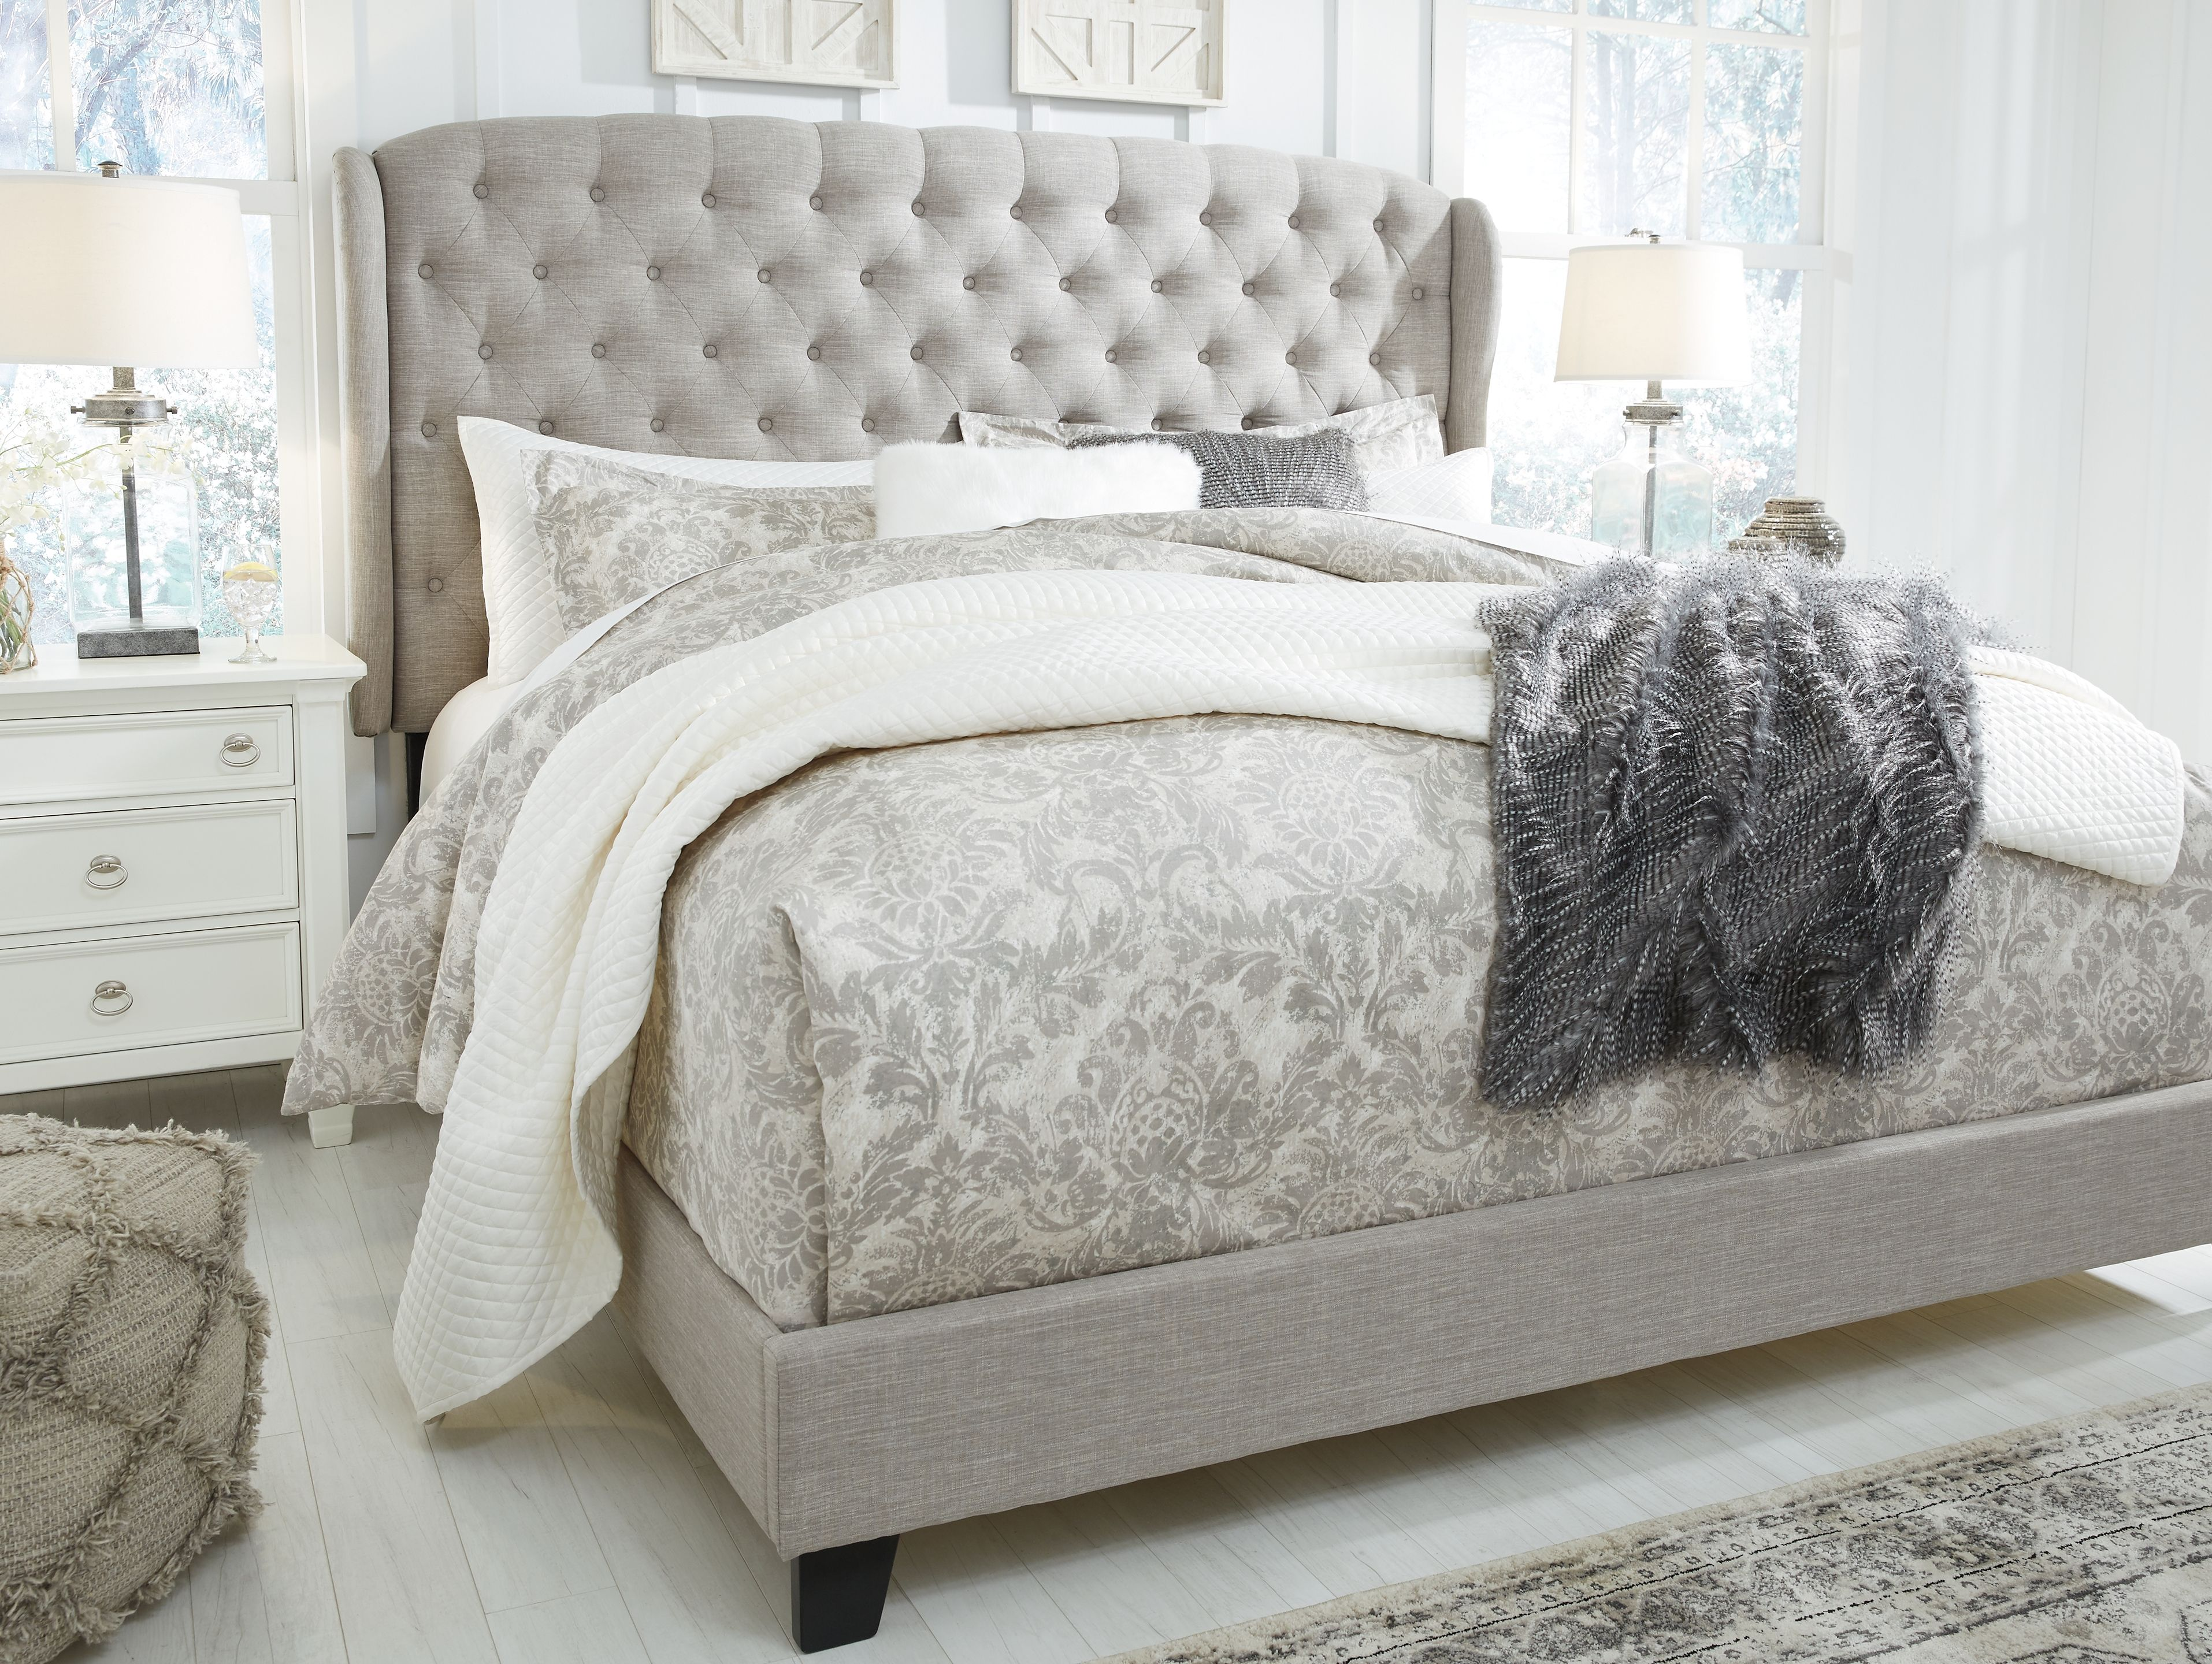 Jerary King Upholstered Bed, Gray Upholstered beds, Grey